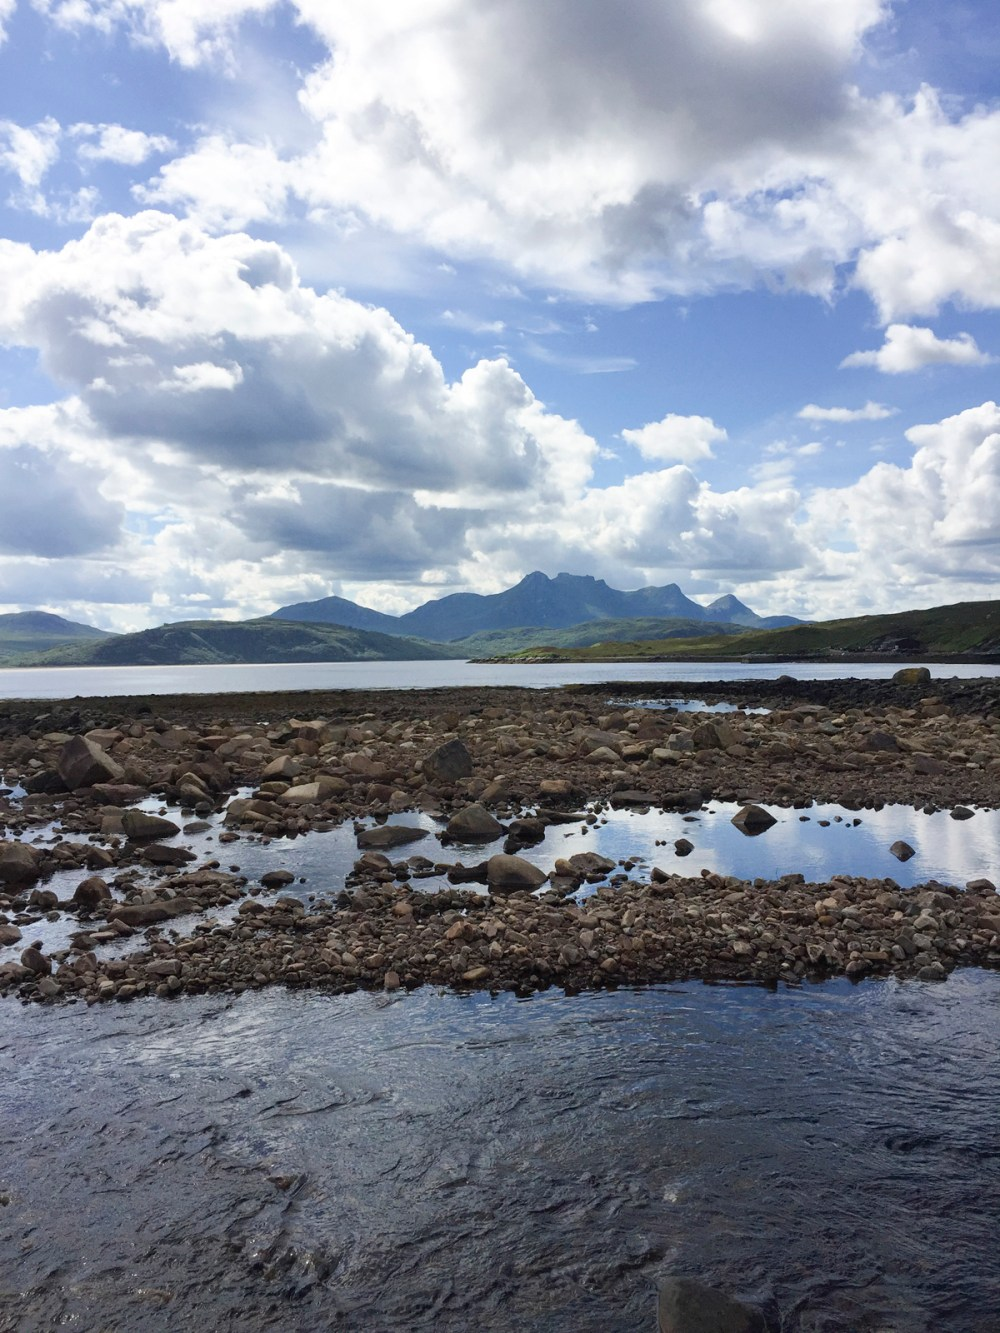 Splodz Blogz | Favourite Photos | Scotland - View of Ben Loyal